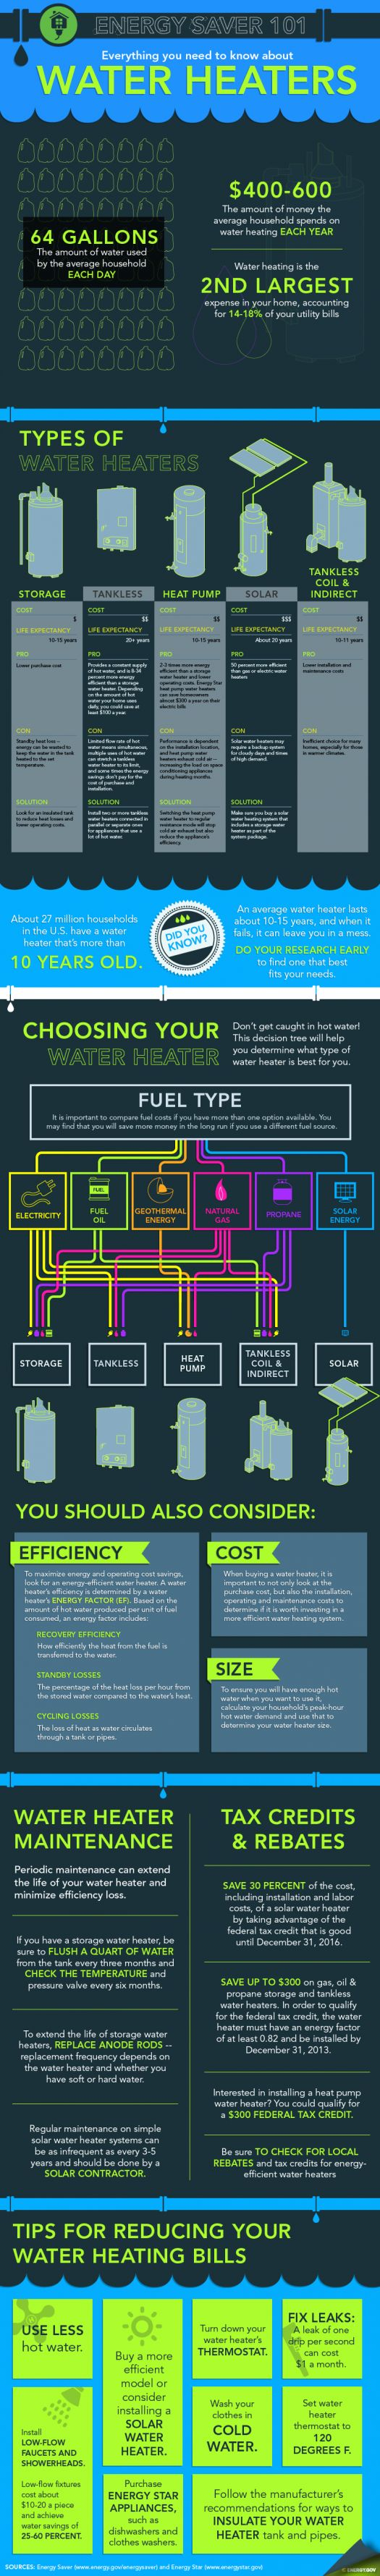 """Our Energy Saver 101 infographic lays out the different types of water heaters on the market and will help you figure out how to select the best model for your home. Download a high-resolution version of the <a href=""""/node/612506"""">infographic</a>. 